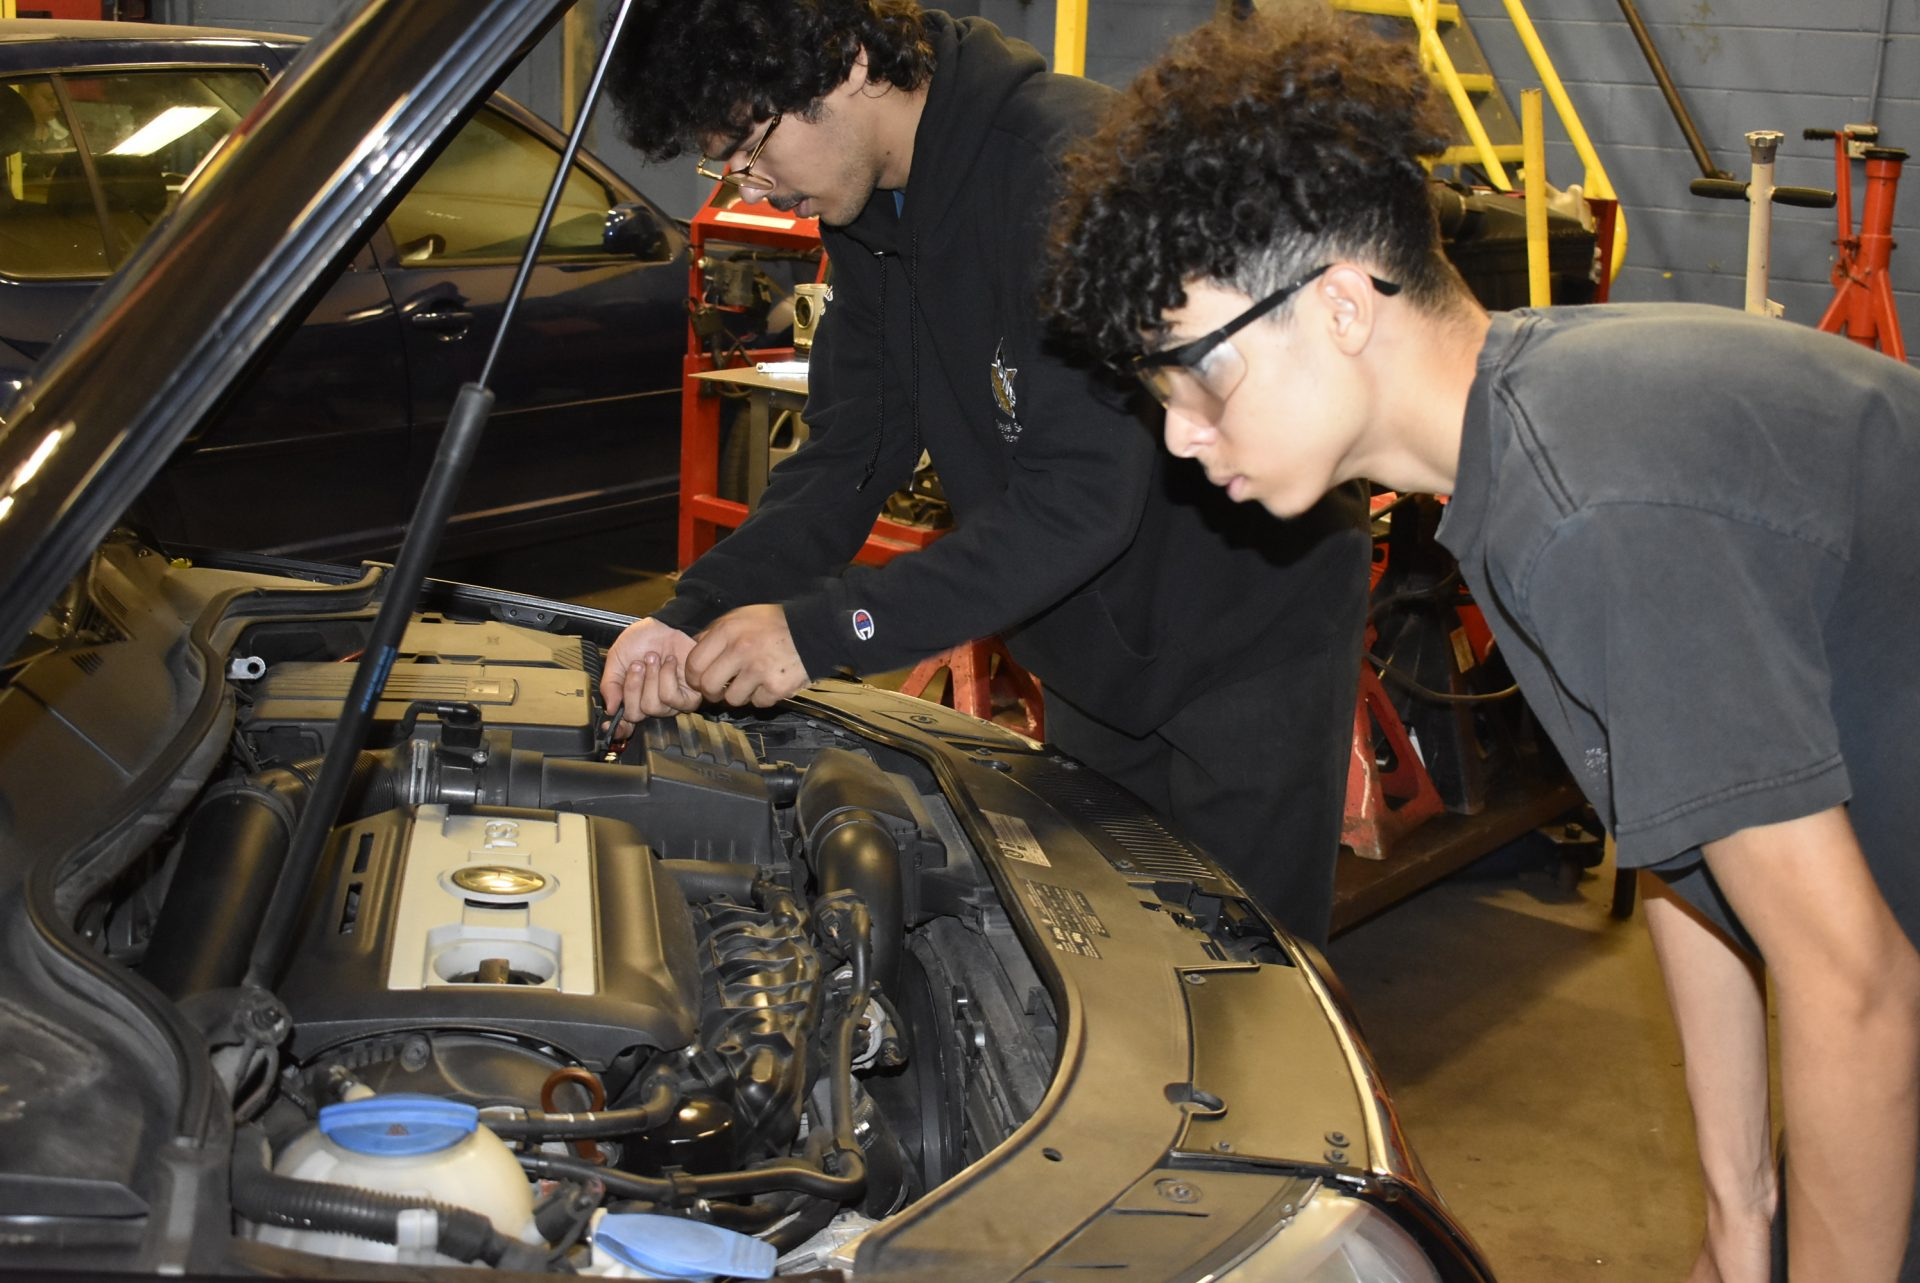 Diesel students working under a car's hood